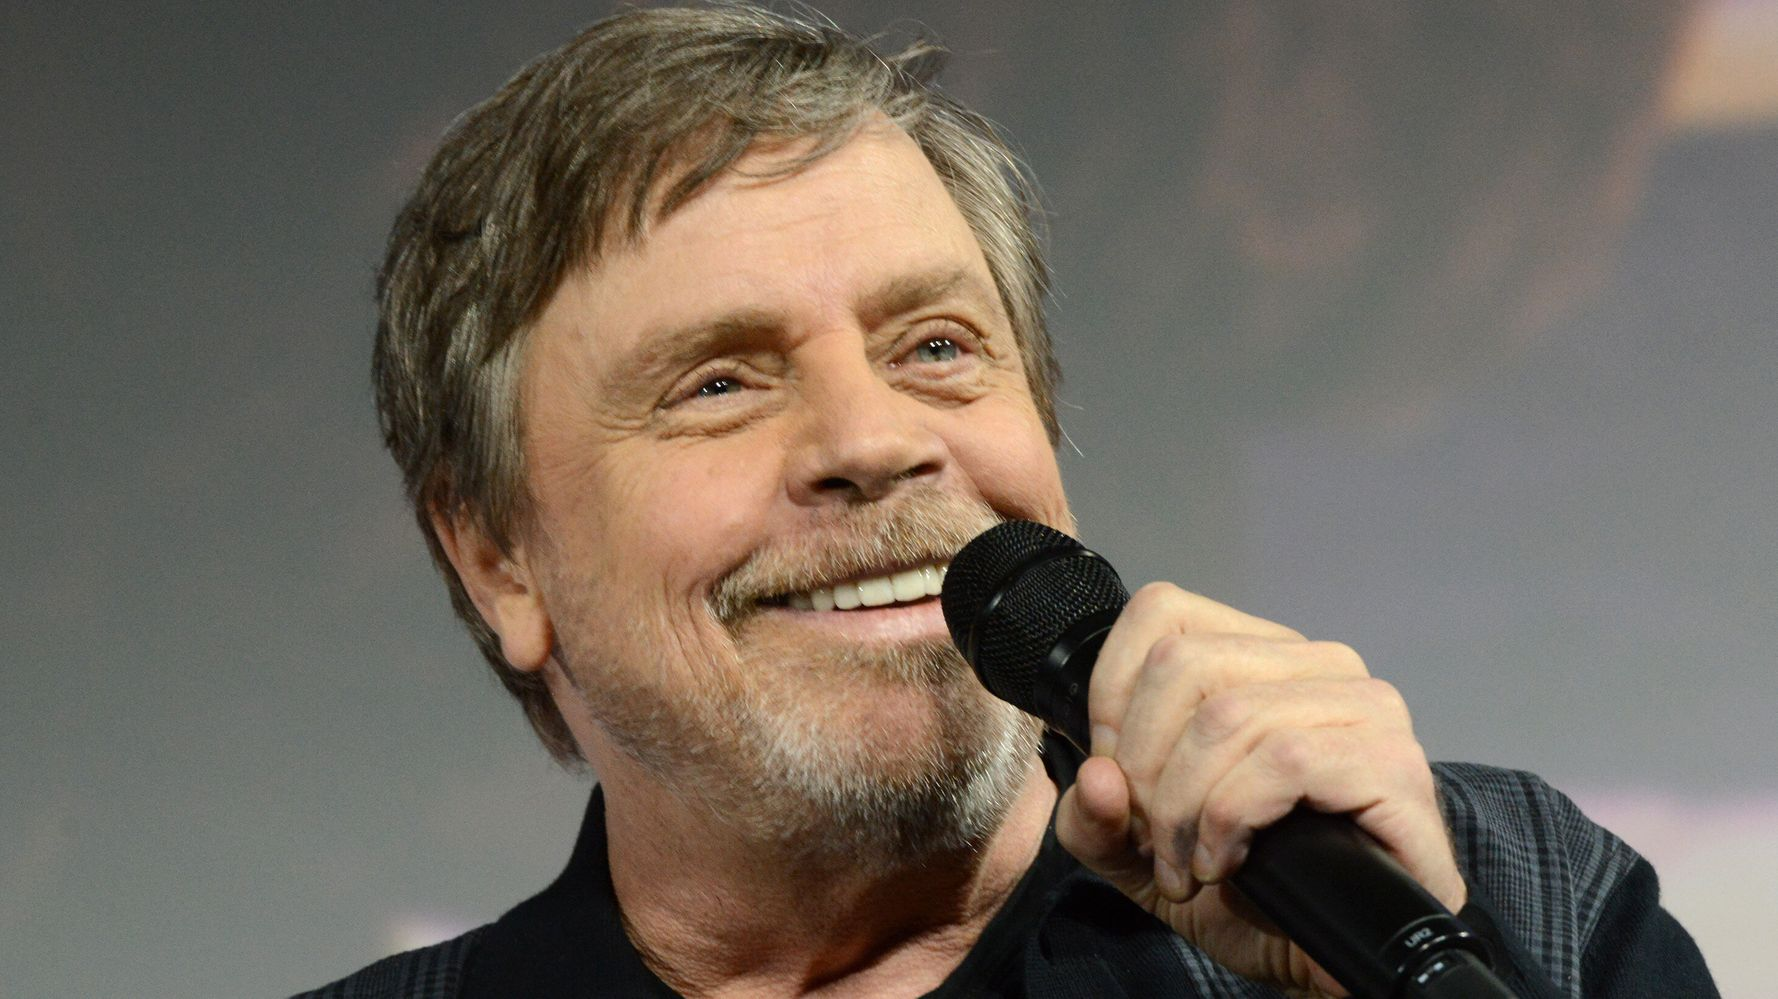 Westlake Legal Group 5d57cd65220000cd07f6f797 Mark Hamill Taunts Trump With Math Question About Pinocchio's Nose